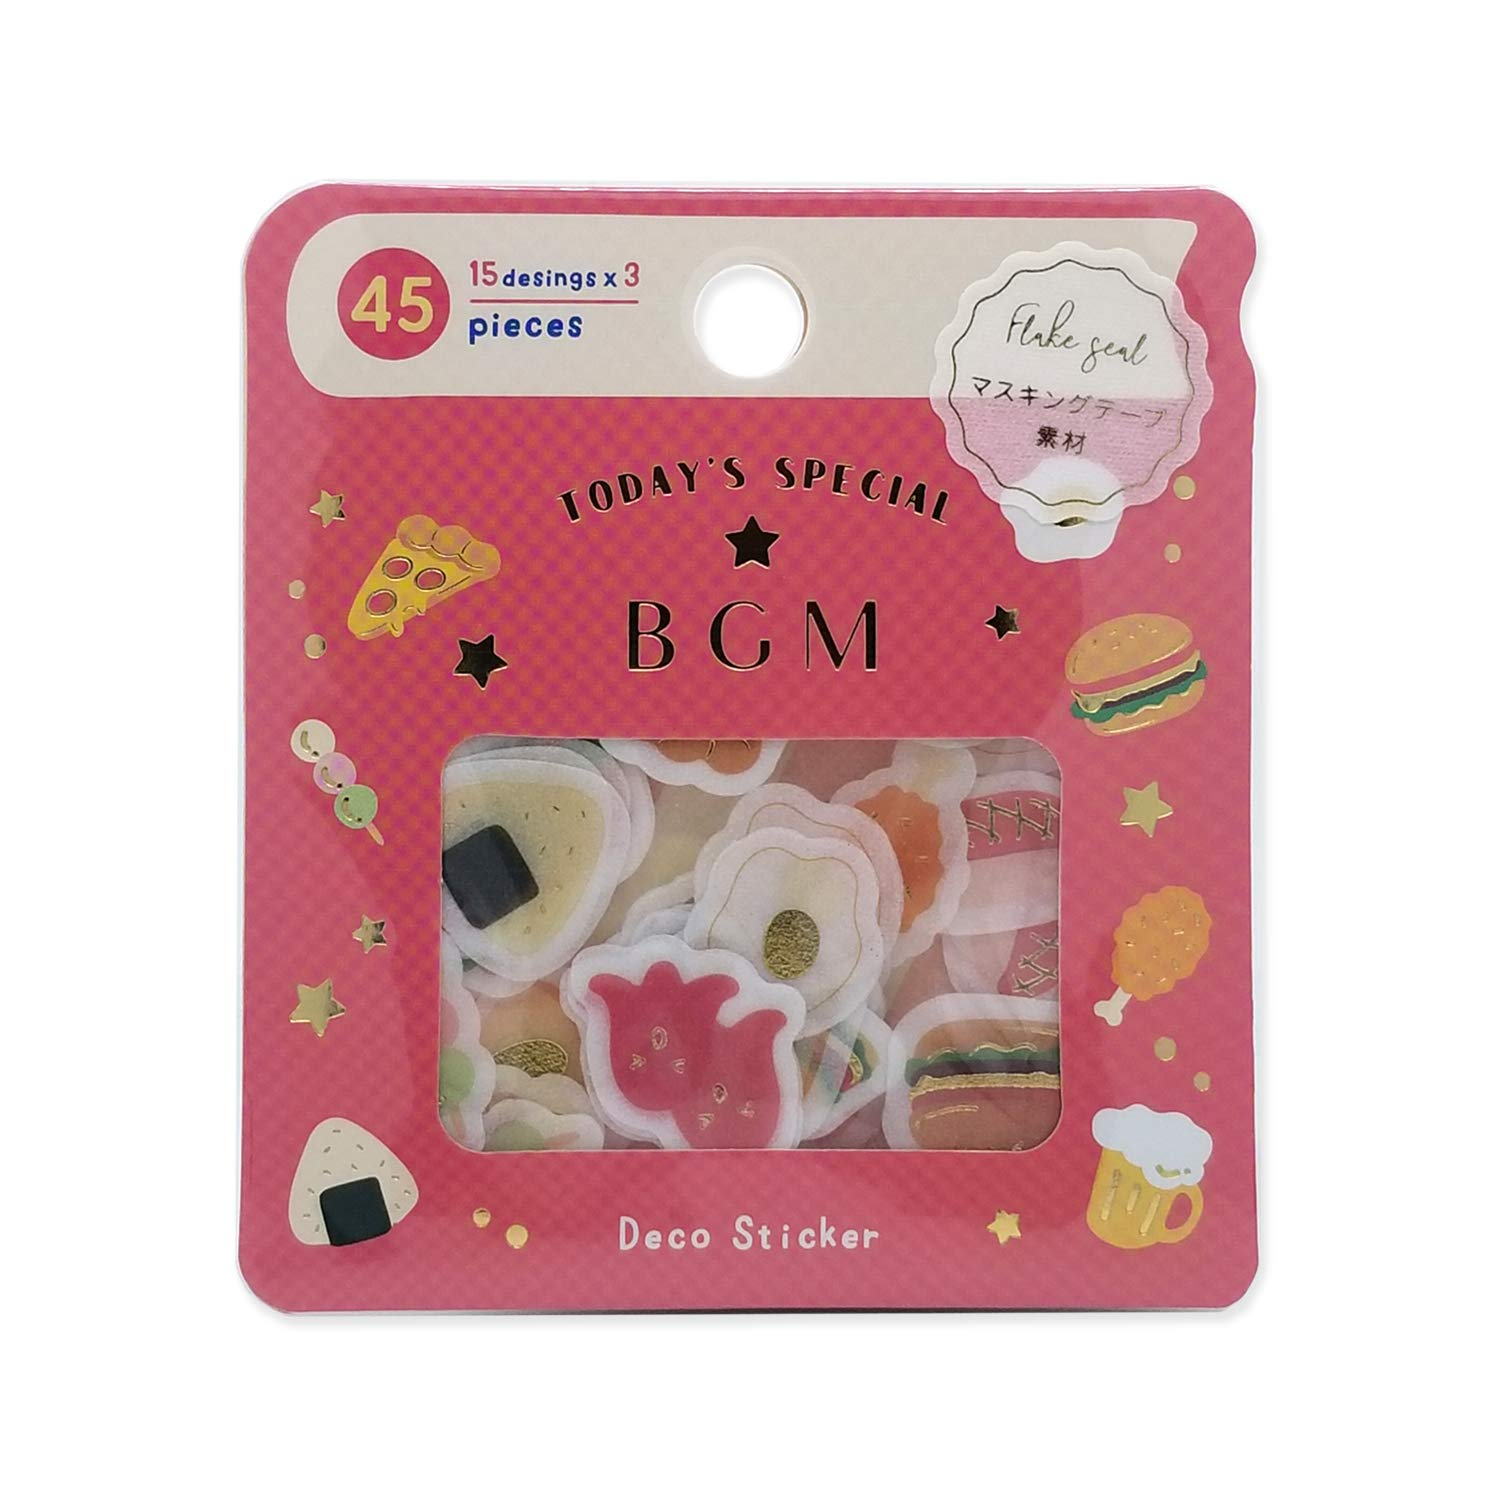 BGM Flake Stickers Flake Seal Foil Stamping - Little Food (Washi Tape Material) - for Scrapbooking Art Craft DIY